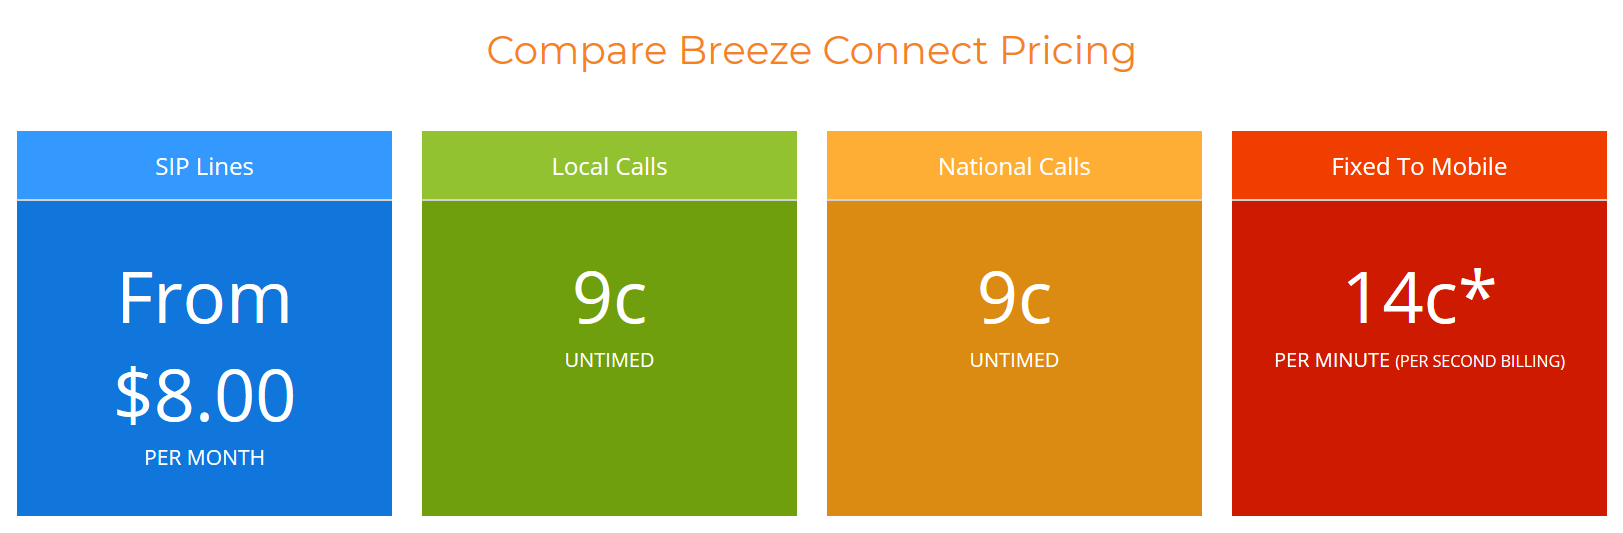 BreezeConnect Pricing